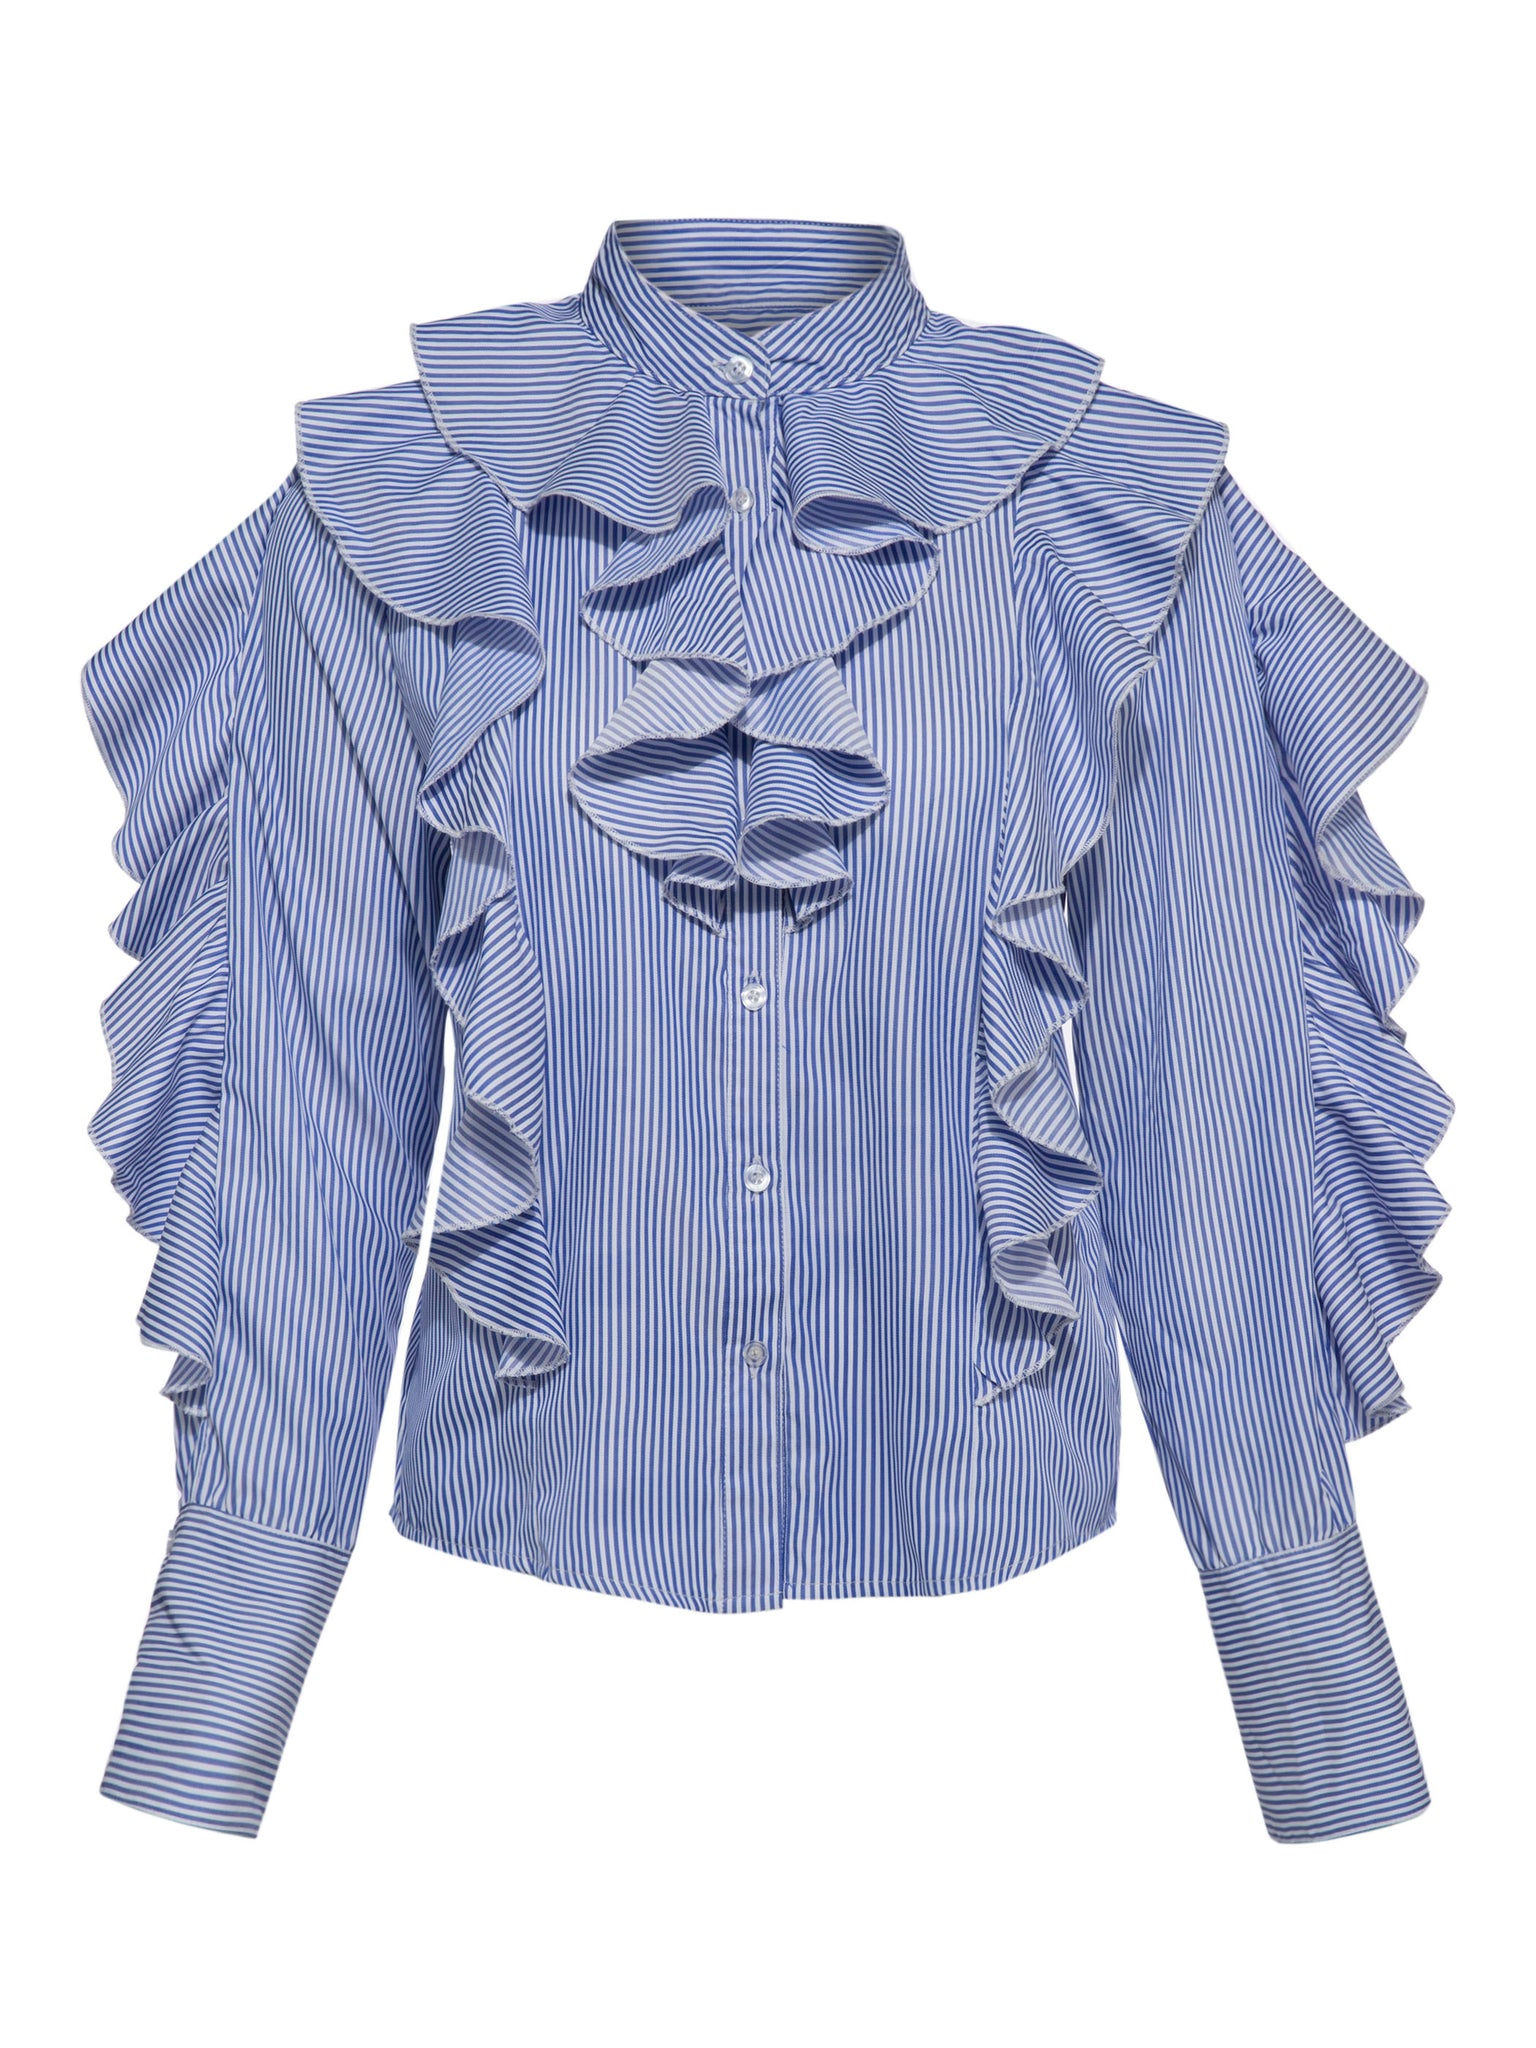 Chicloth Blue Stripe Lotus Leaf Long Sleeve Blouse-Blouse-Chicloth